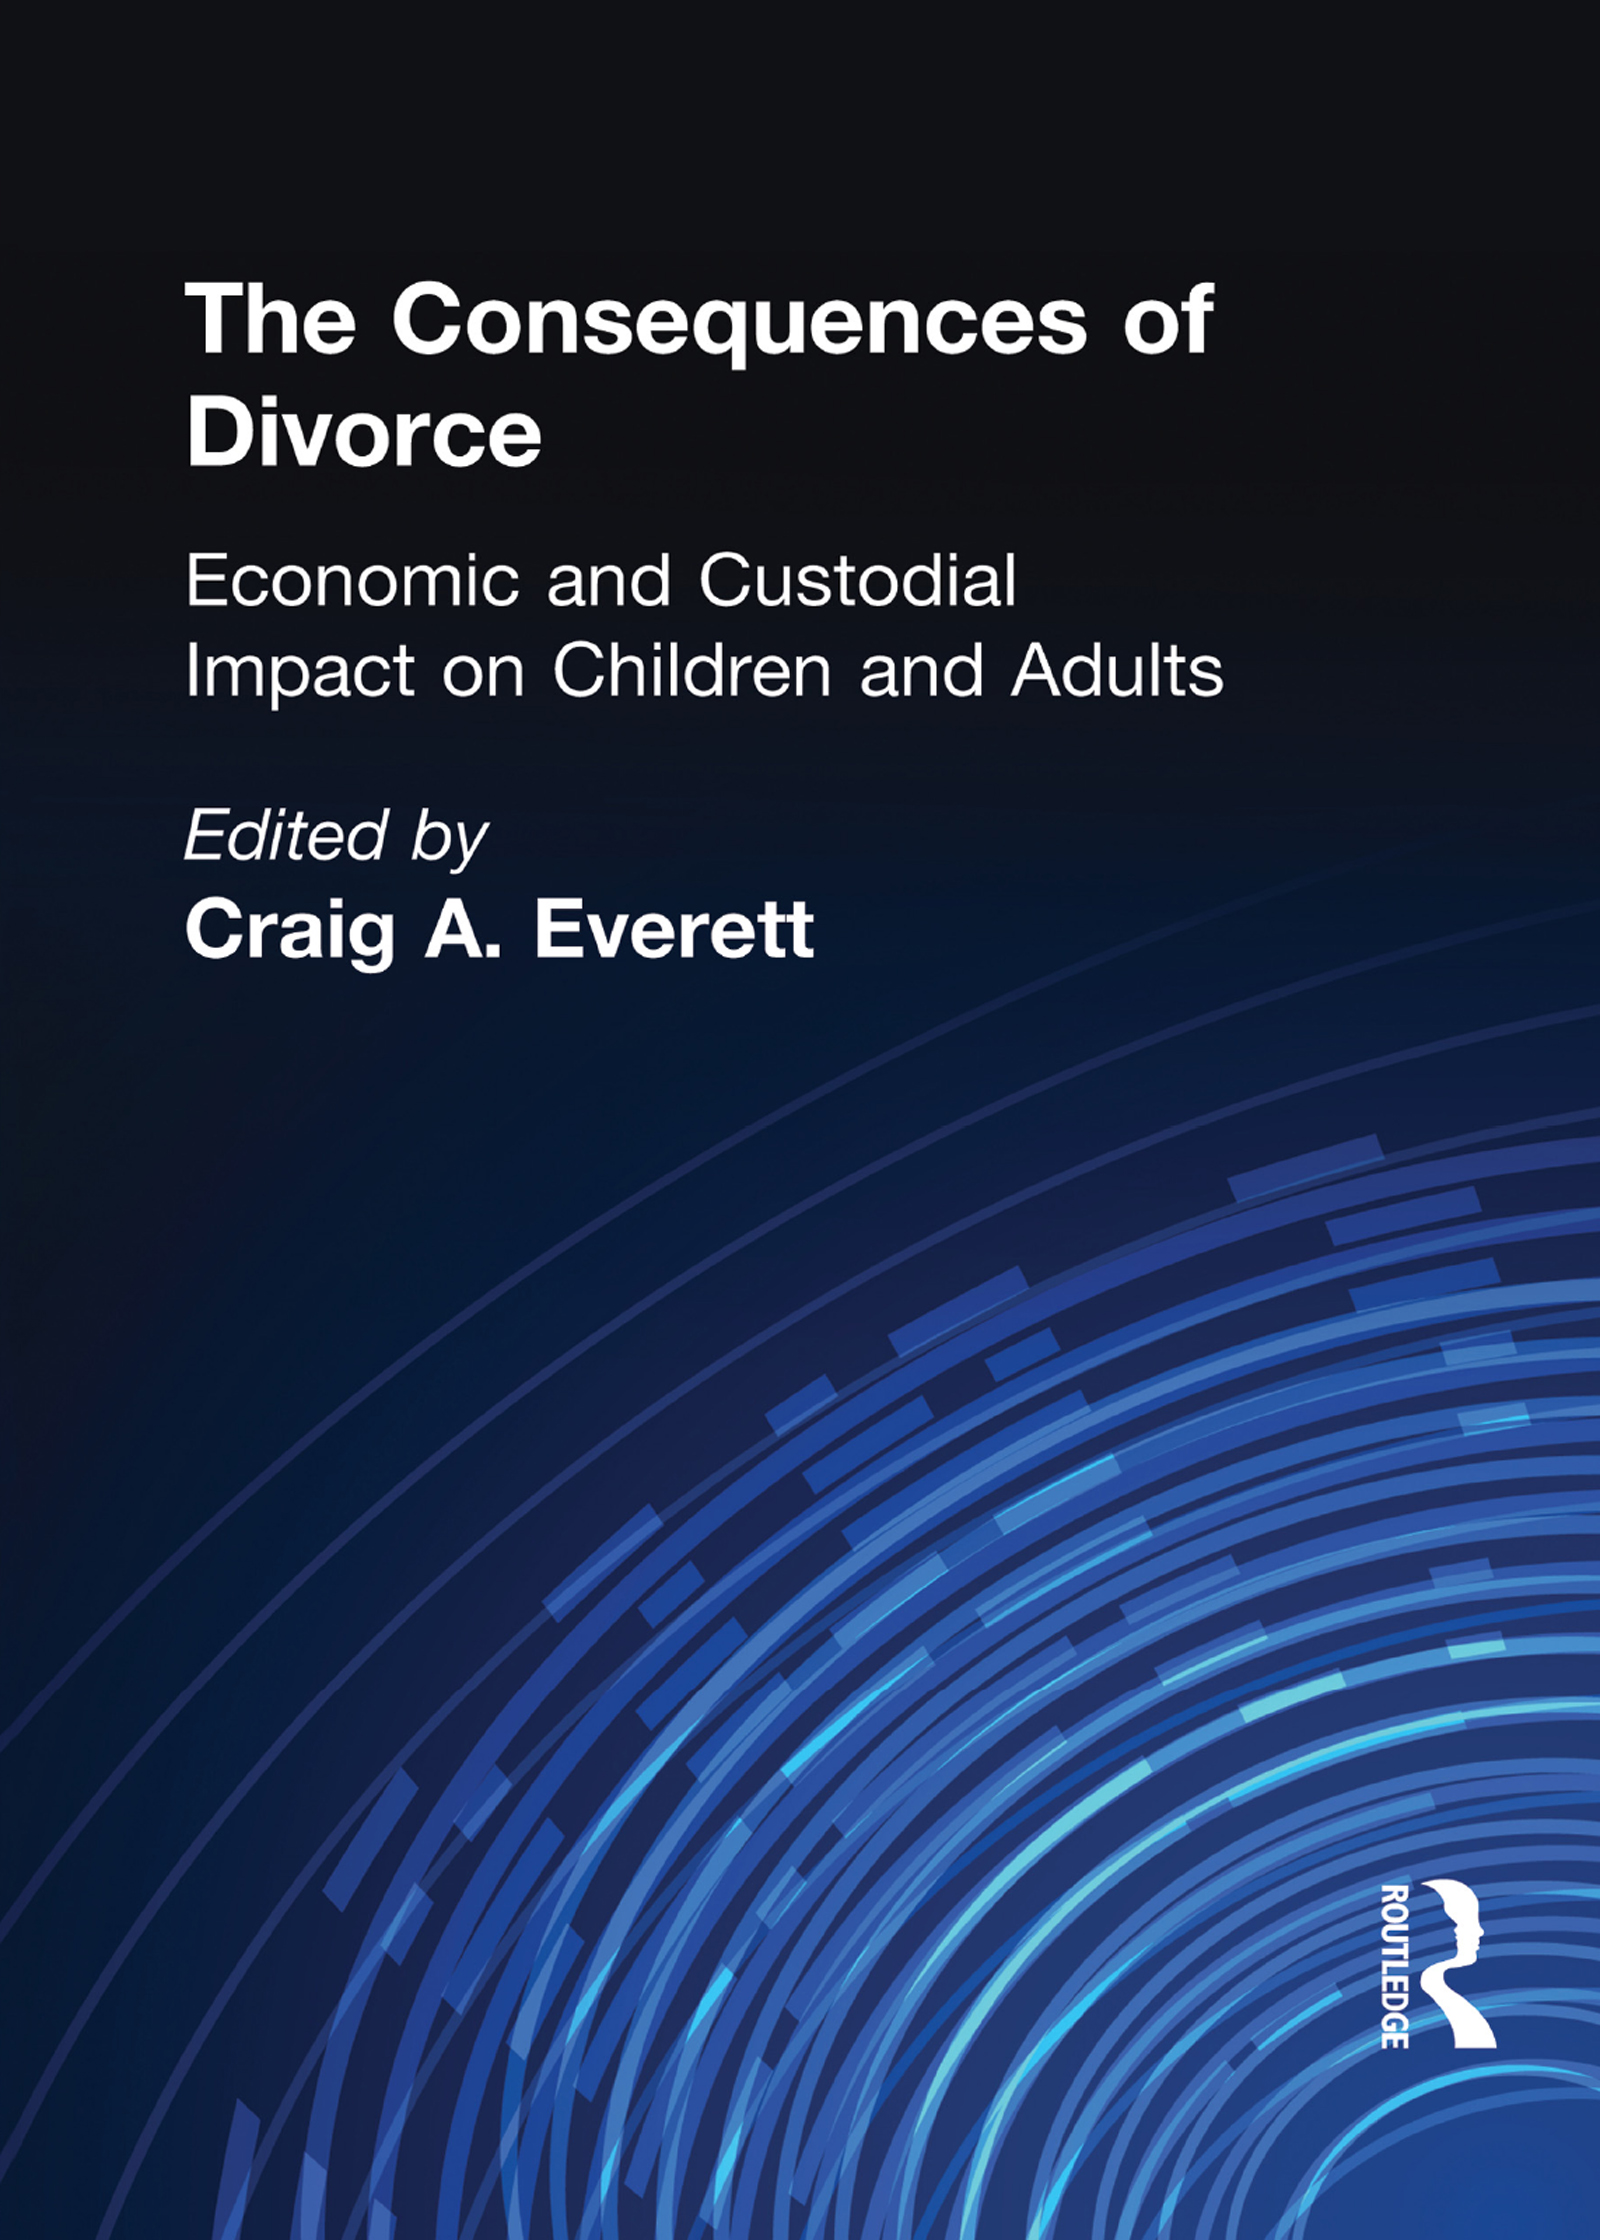 The Effects of Background Characteristics of Attorneys and Judges on Decision Making in Domestic Relations Court: An Analysis of Child Support Awards